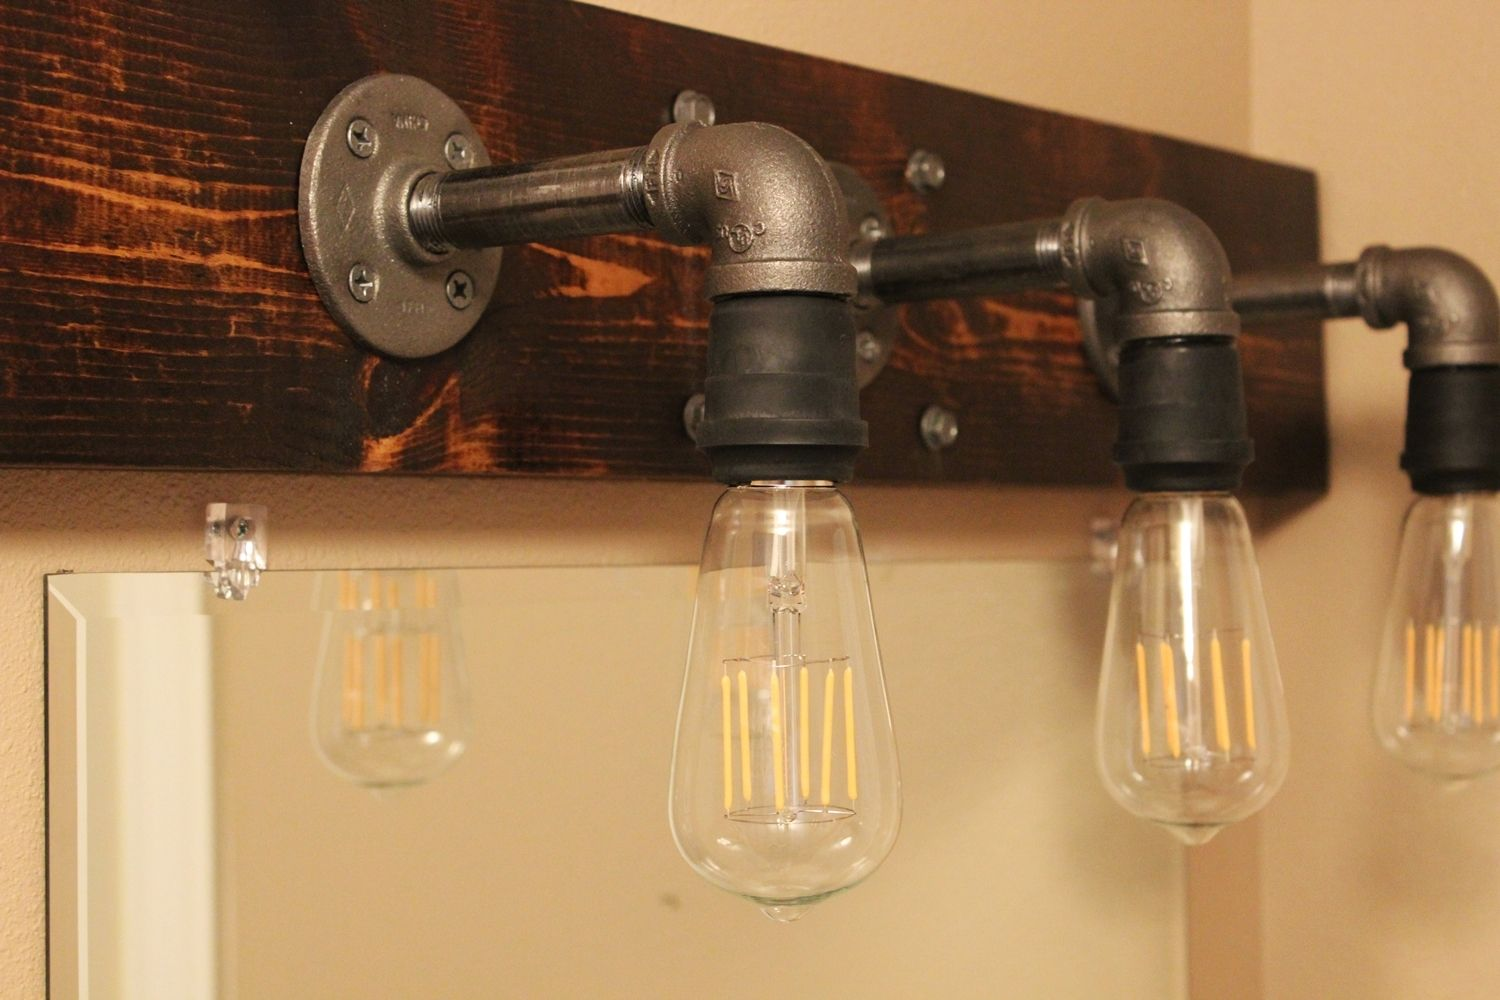 Design Industrial Light Fixtures diy industrial bathroom light fixtures home decorating trends homedit